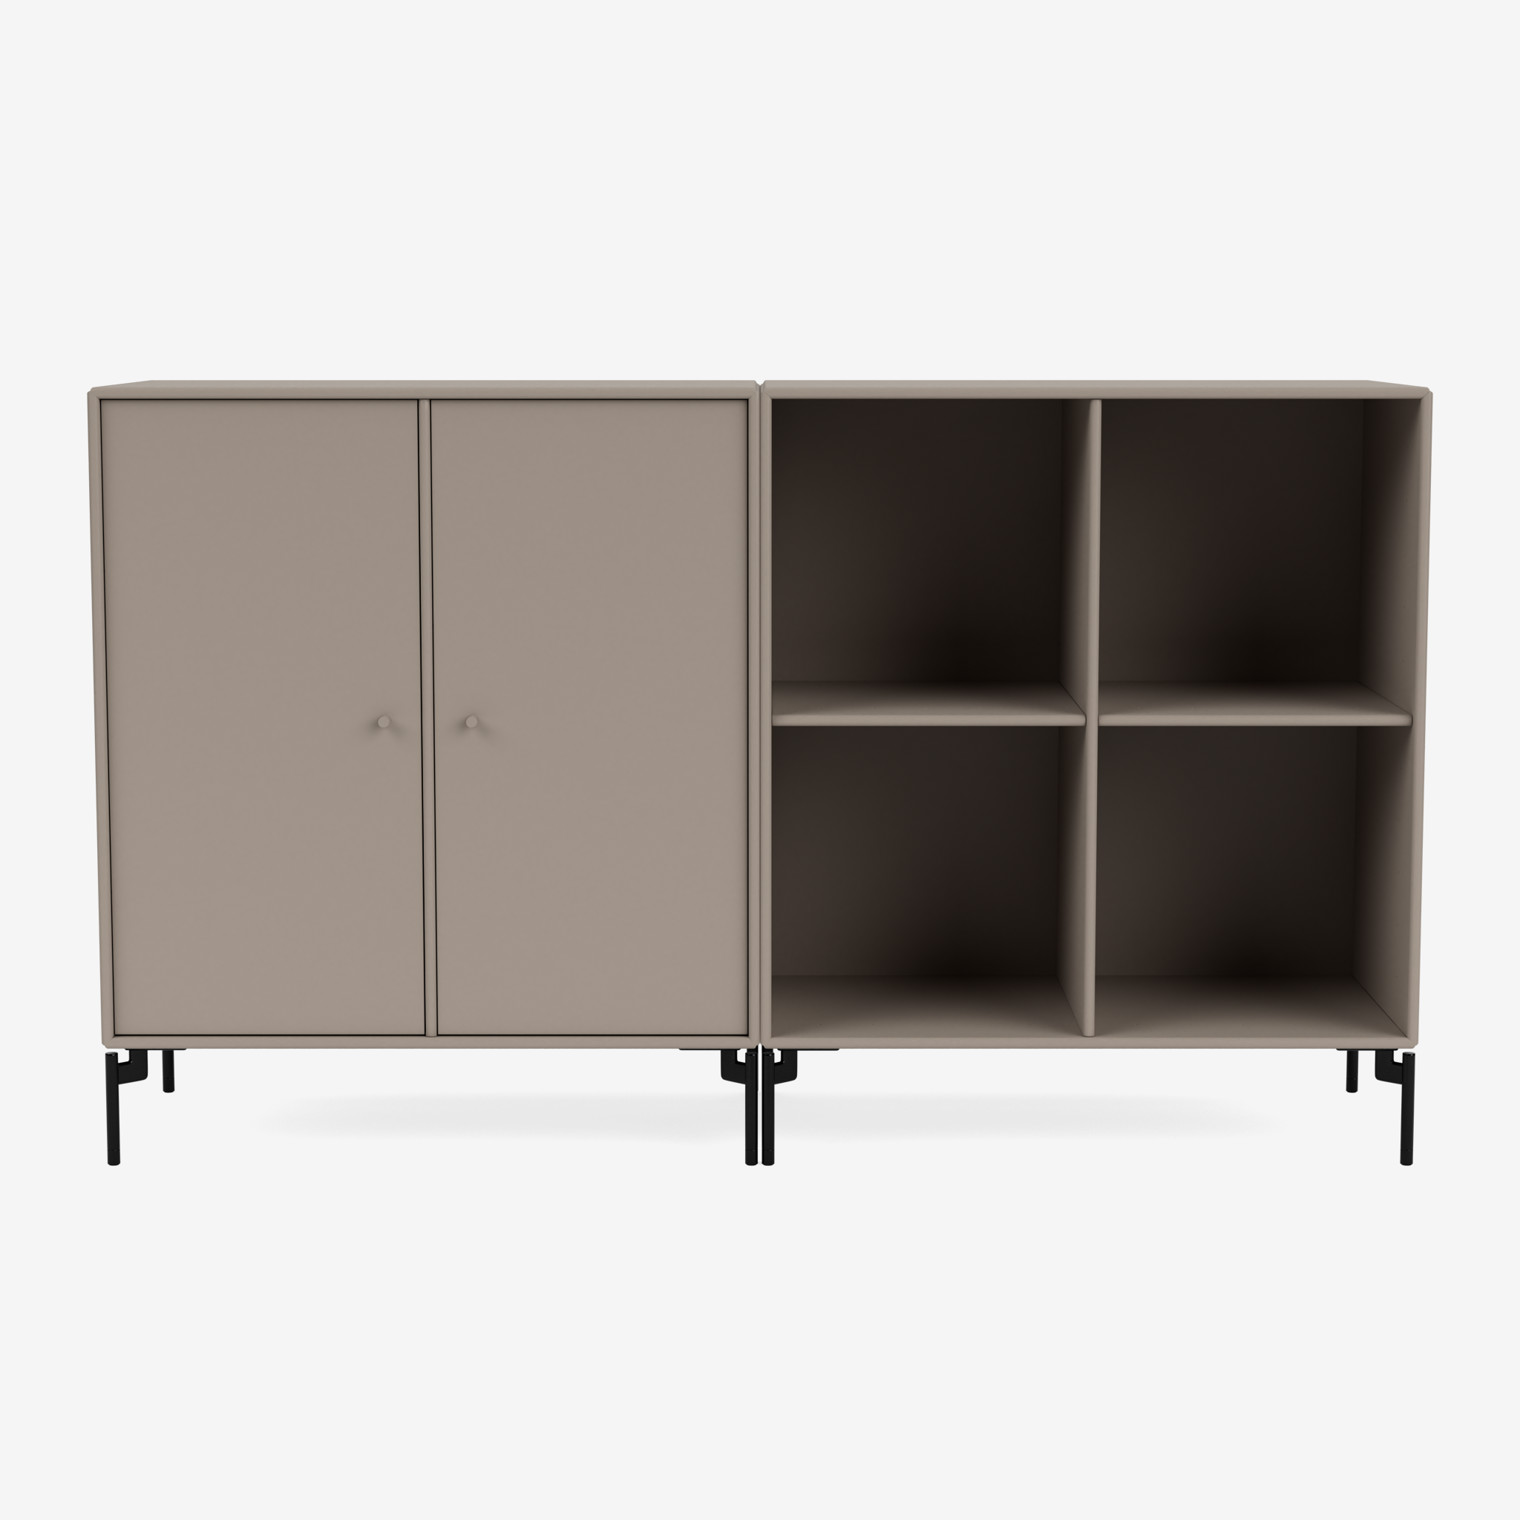 PAIR classic sideboard